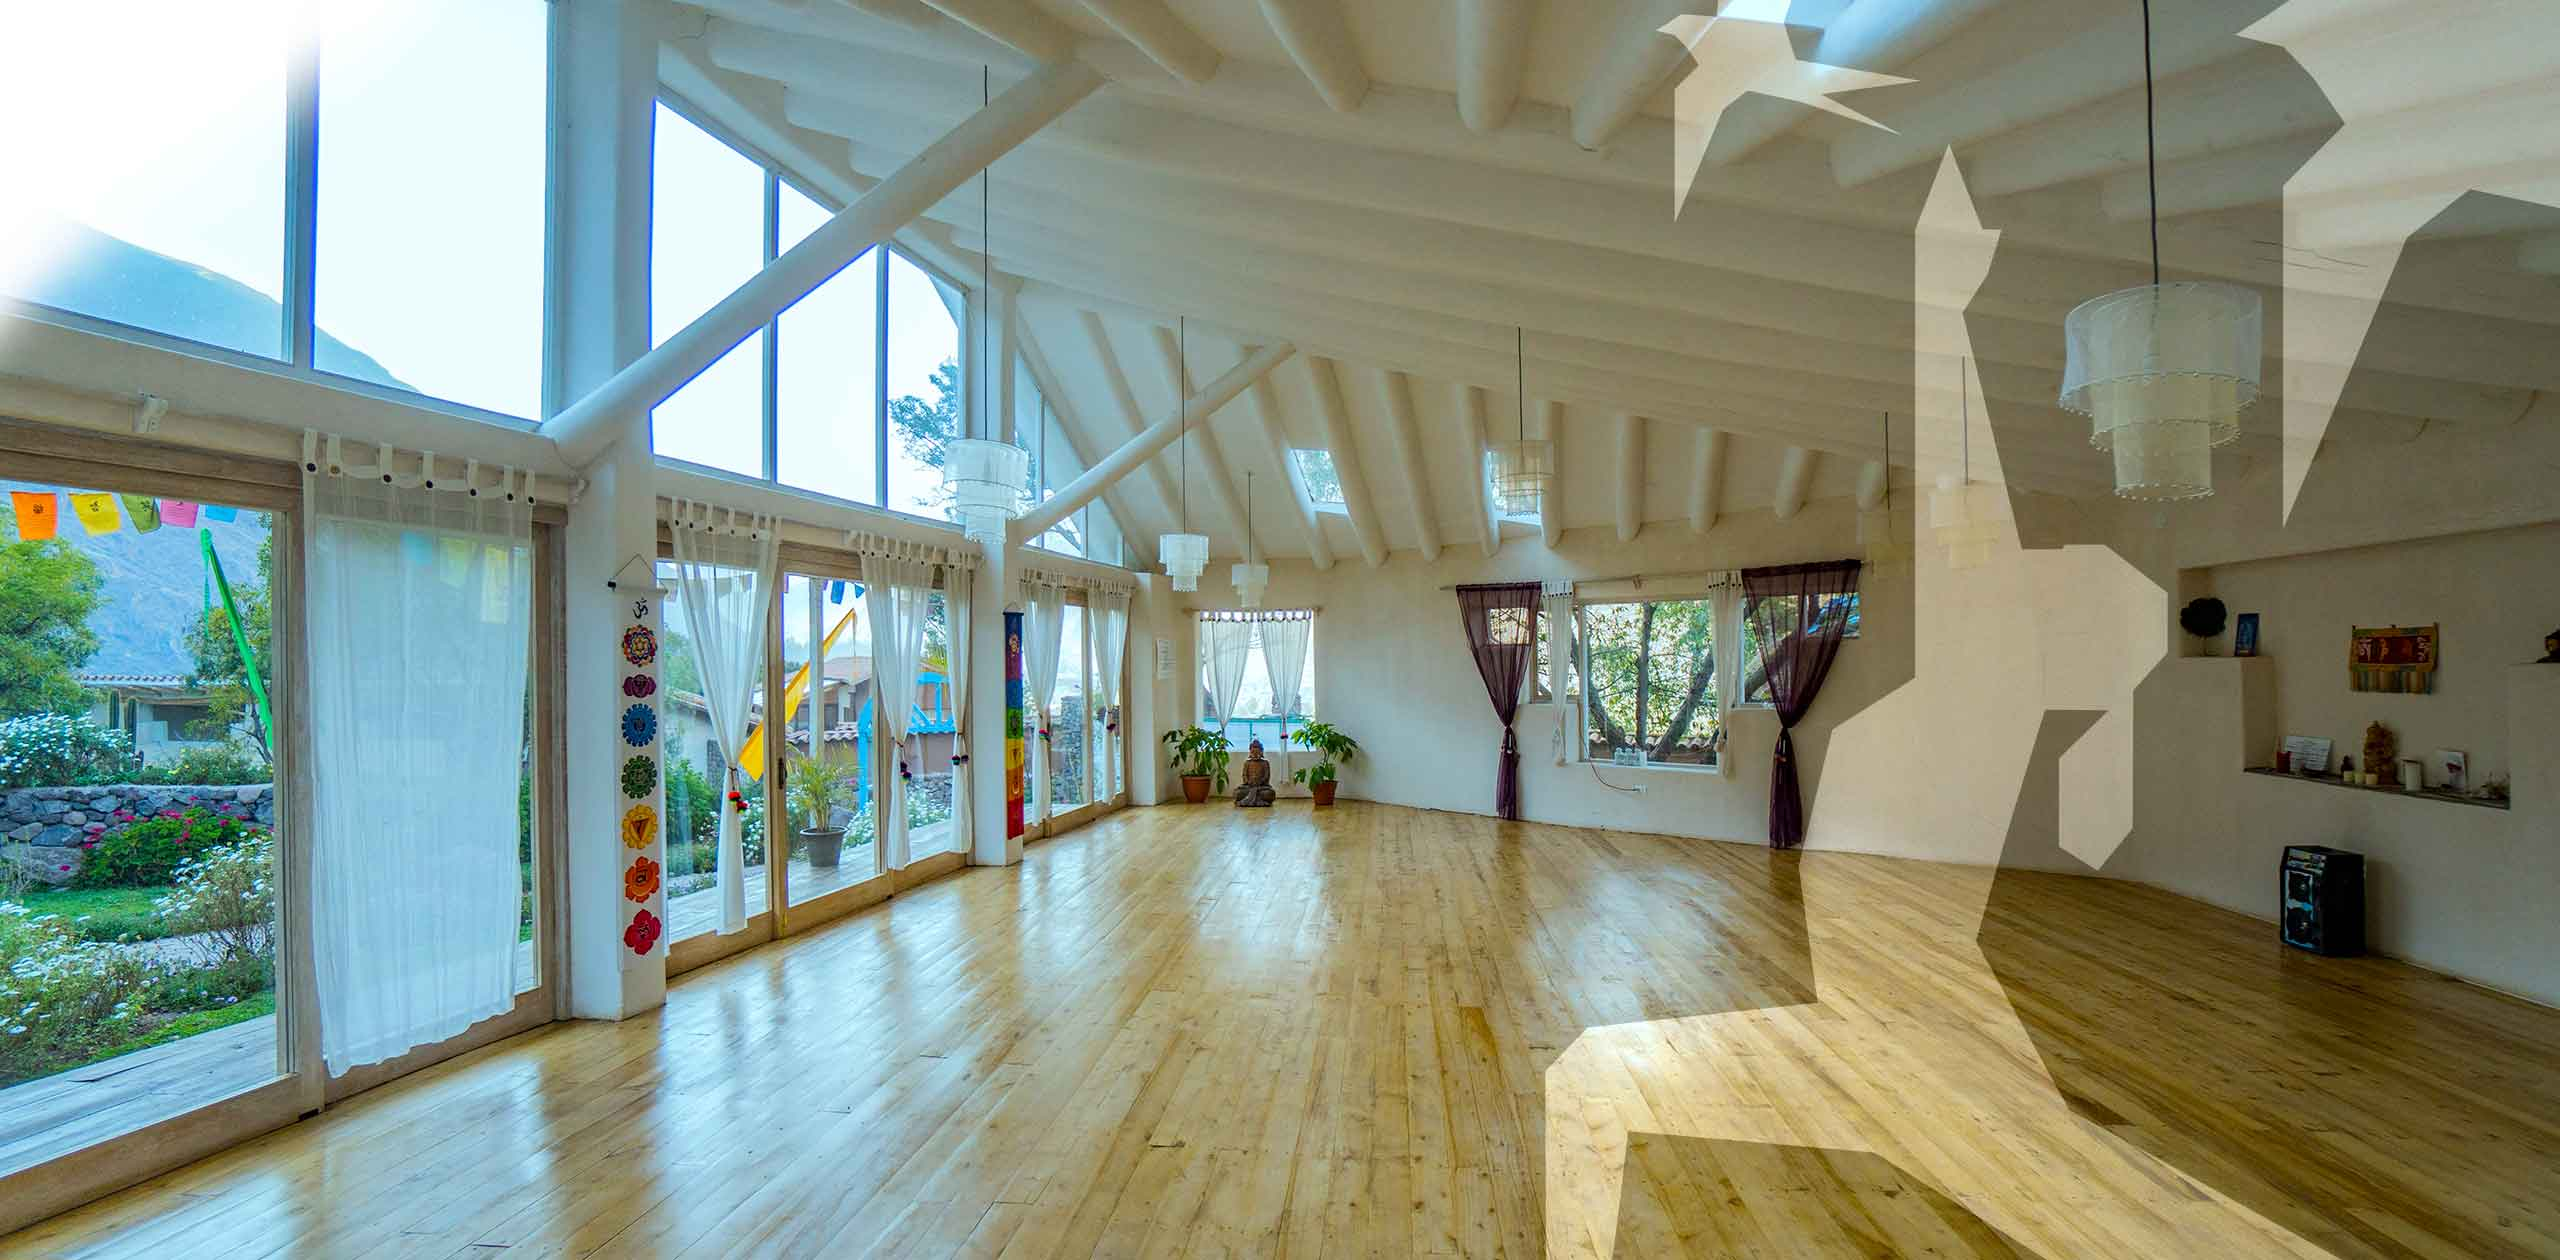 The Sacred Valley Yoga Studio